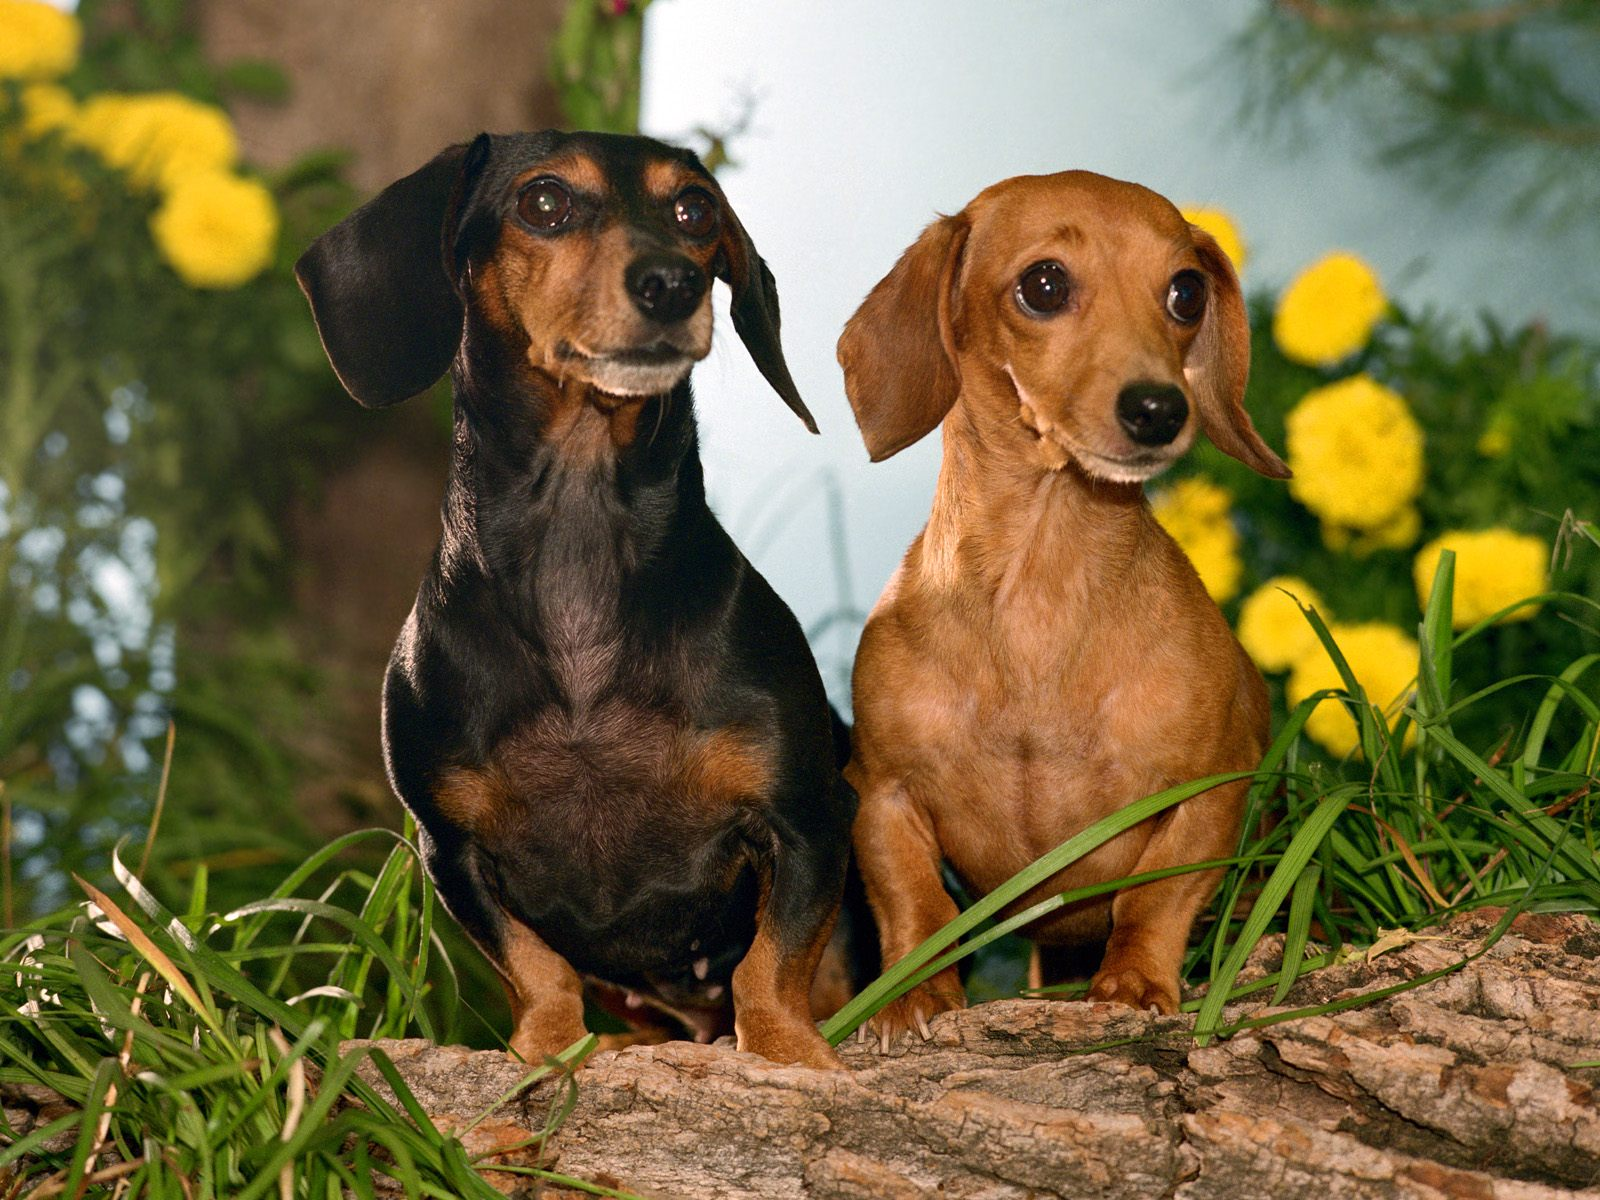 Cute Dachshund dogs in flowers wallpaper